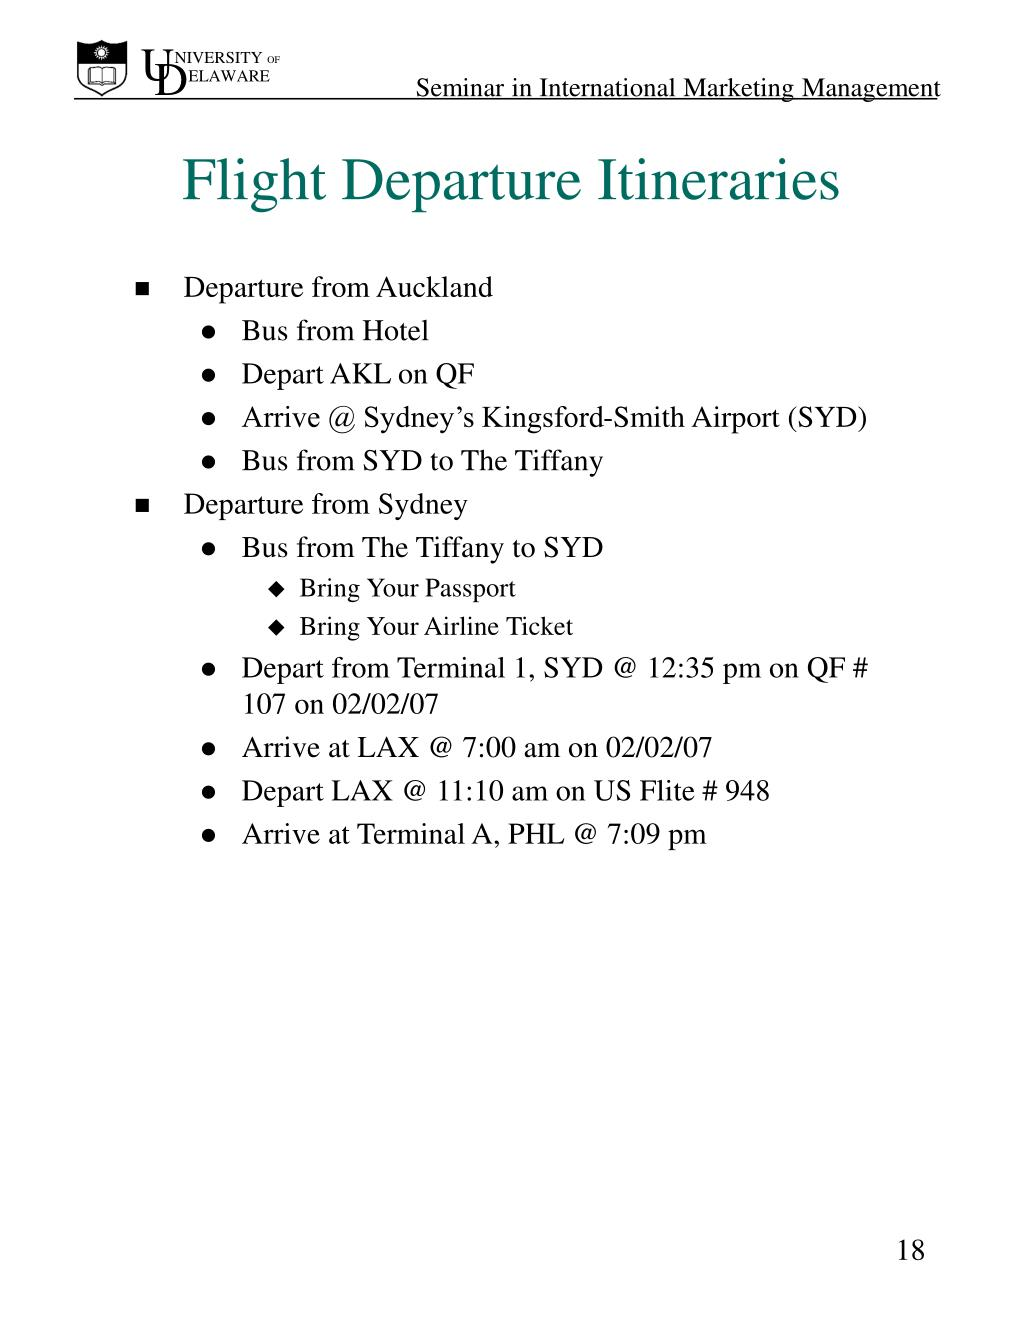 Flight Departure Itineraries